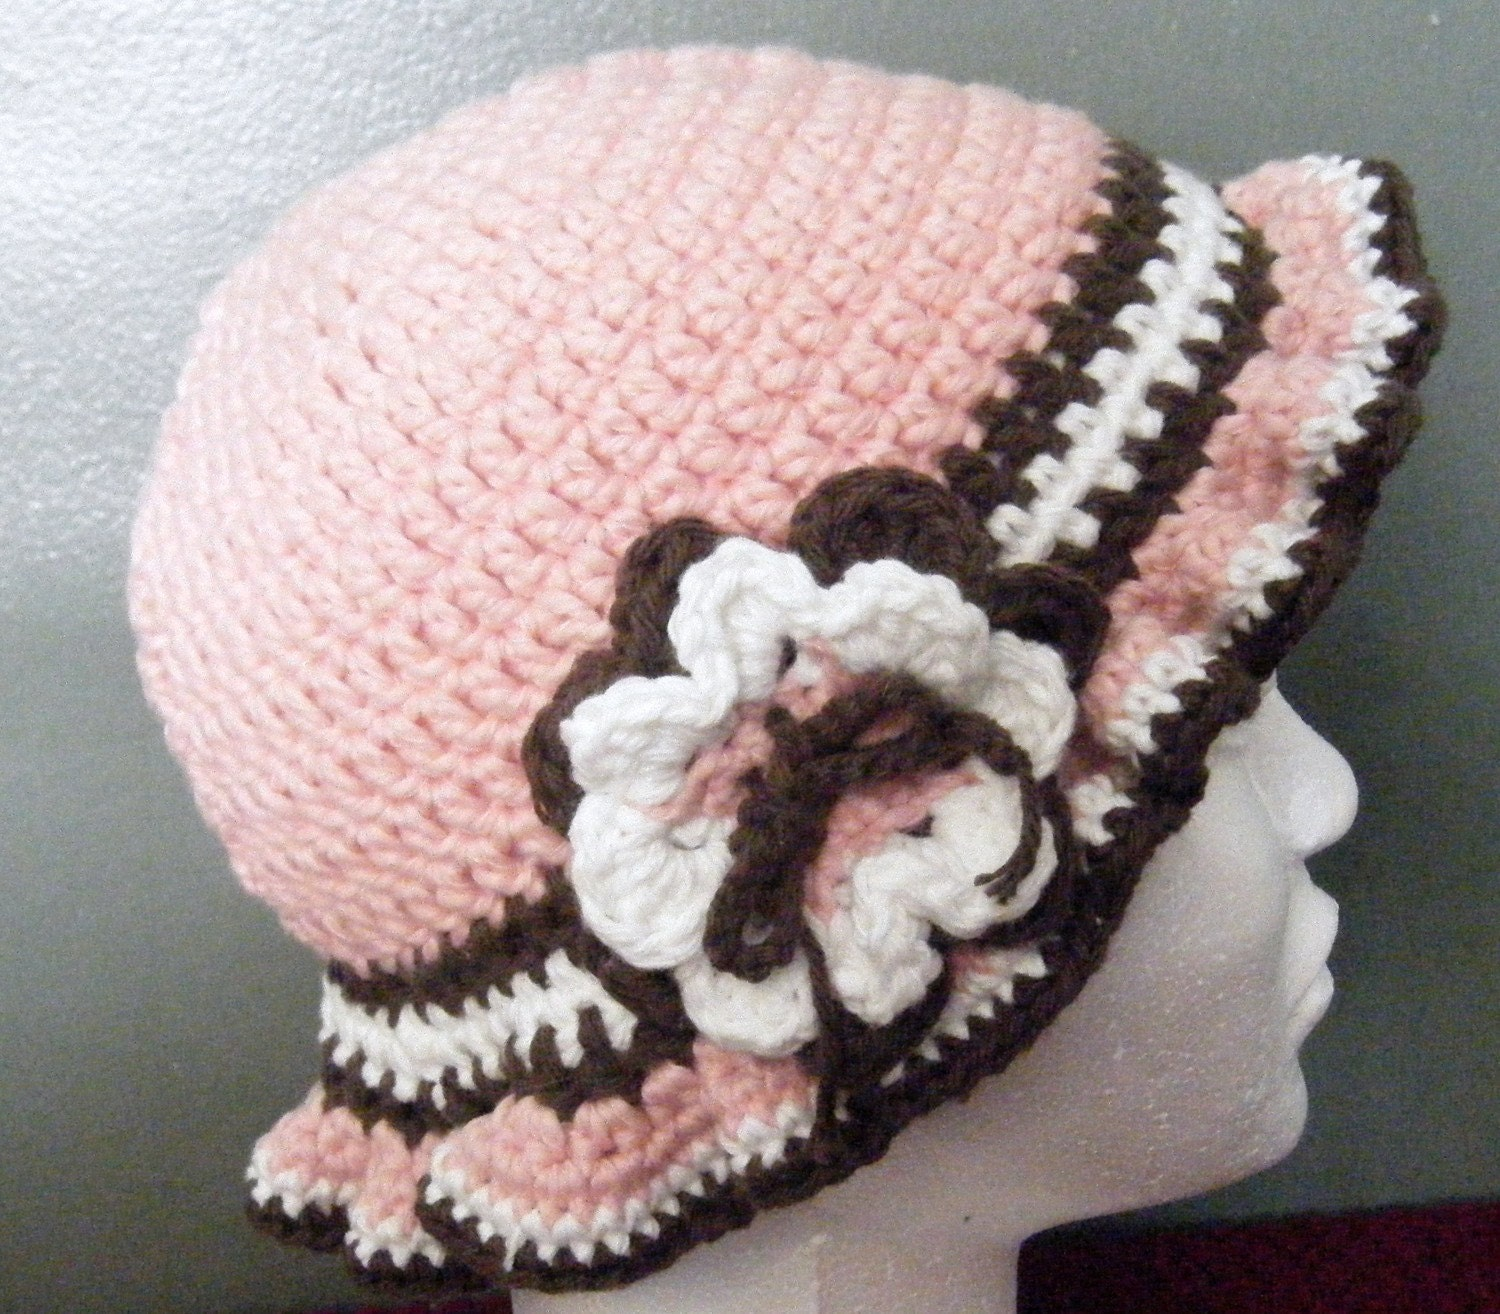 Crochet Girls Hat in Pink, Brown and White